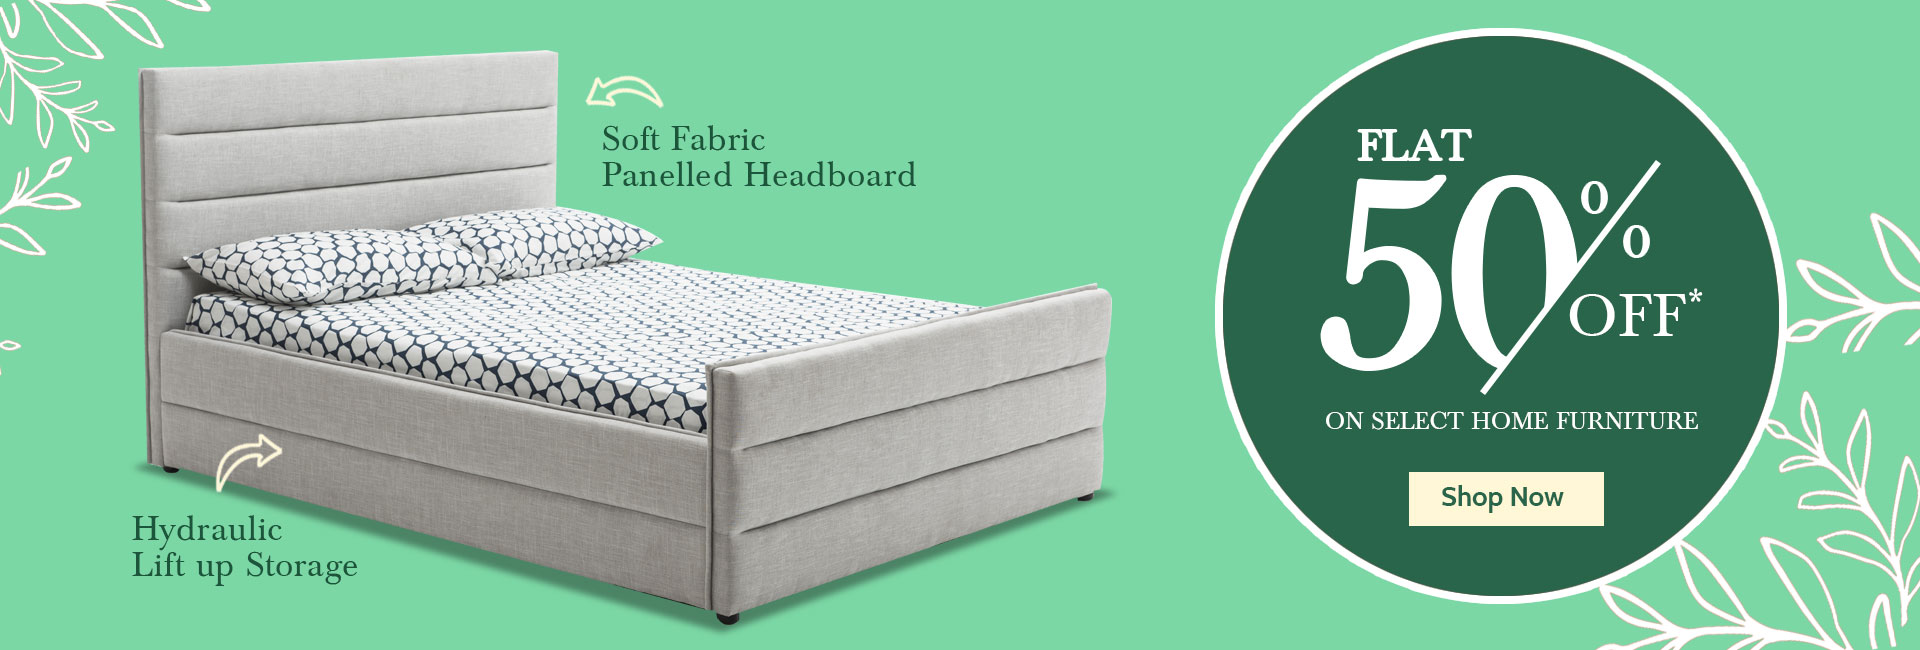 Flat 50% Offer On Home Furniture